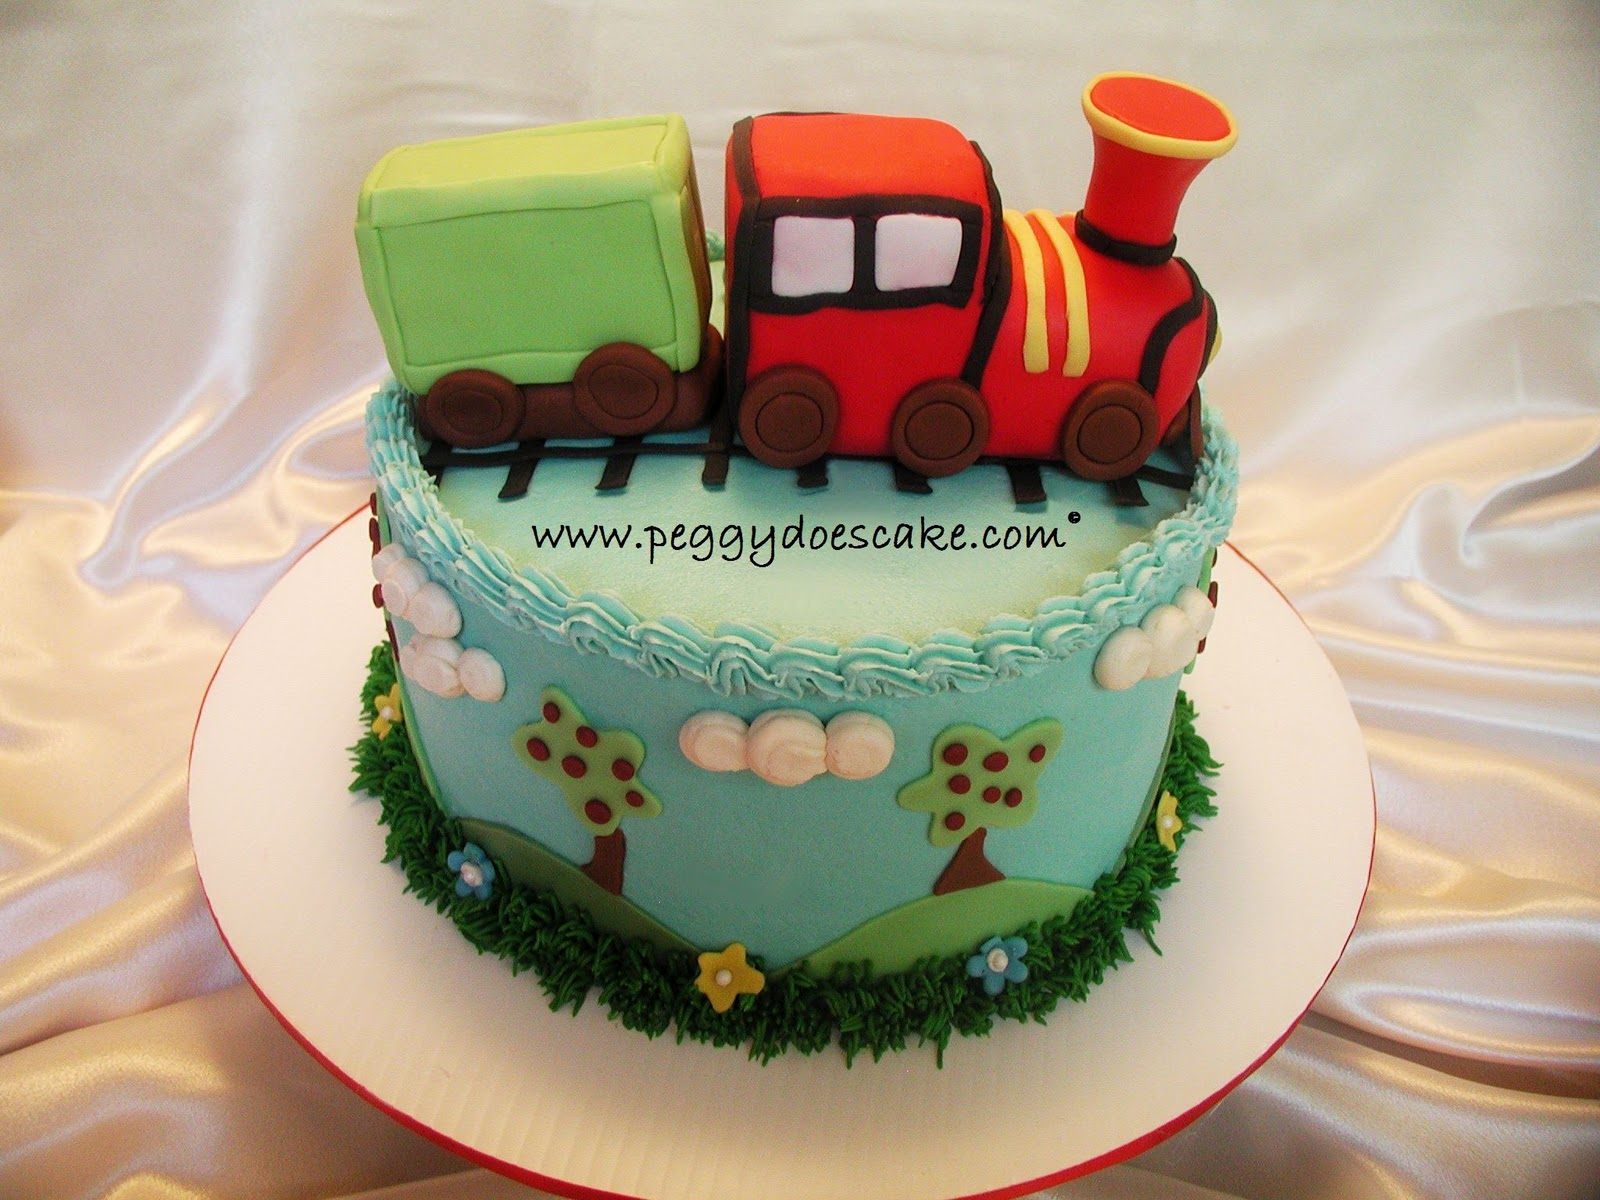 Peggy does cake james turned 2 with a choo choo cake click almond sour cream torted and filled with whipped vanilla bean buttercream everything on the cake is completely edible happy birthday little james altavistaventures Image collections